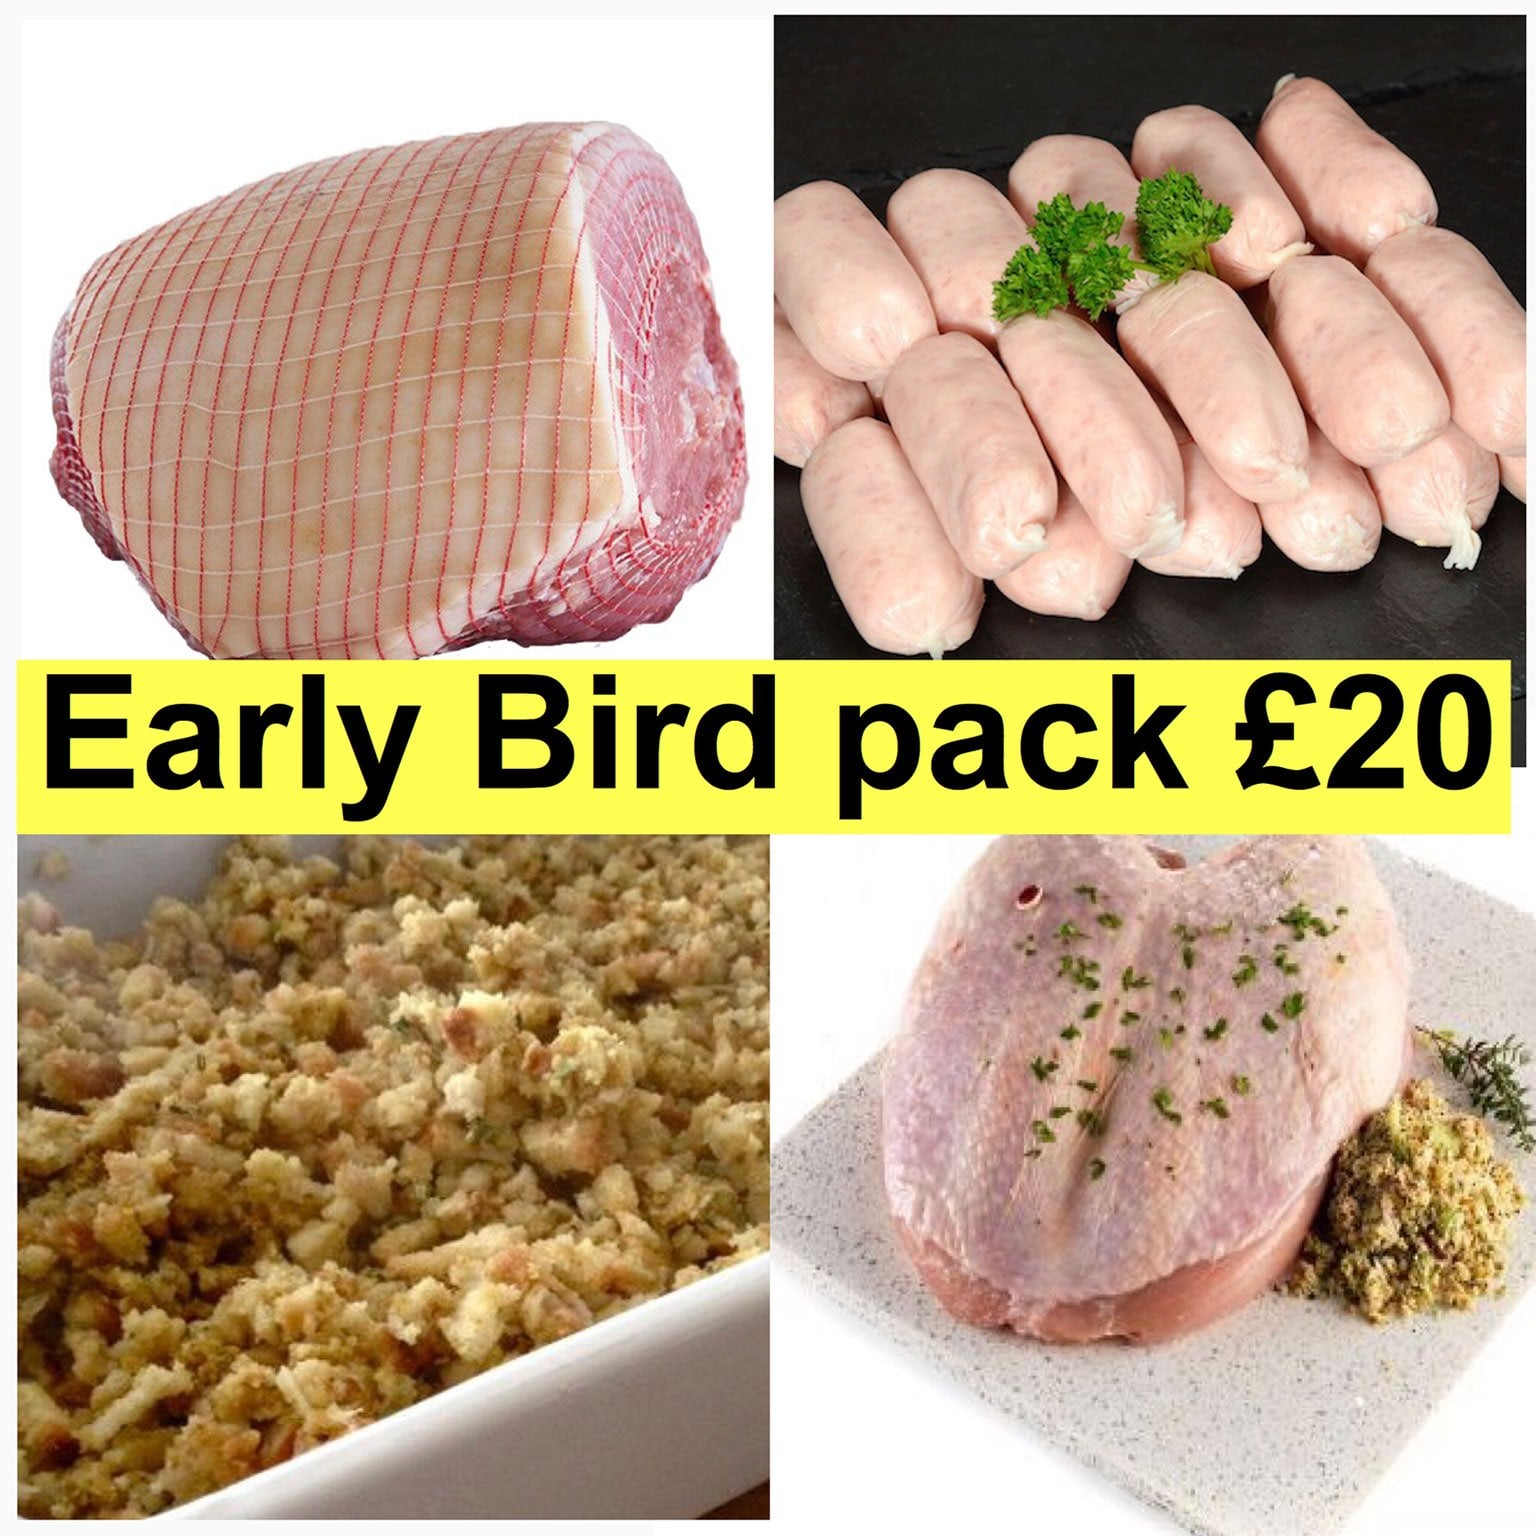 early-bird-pack-£20